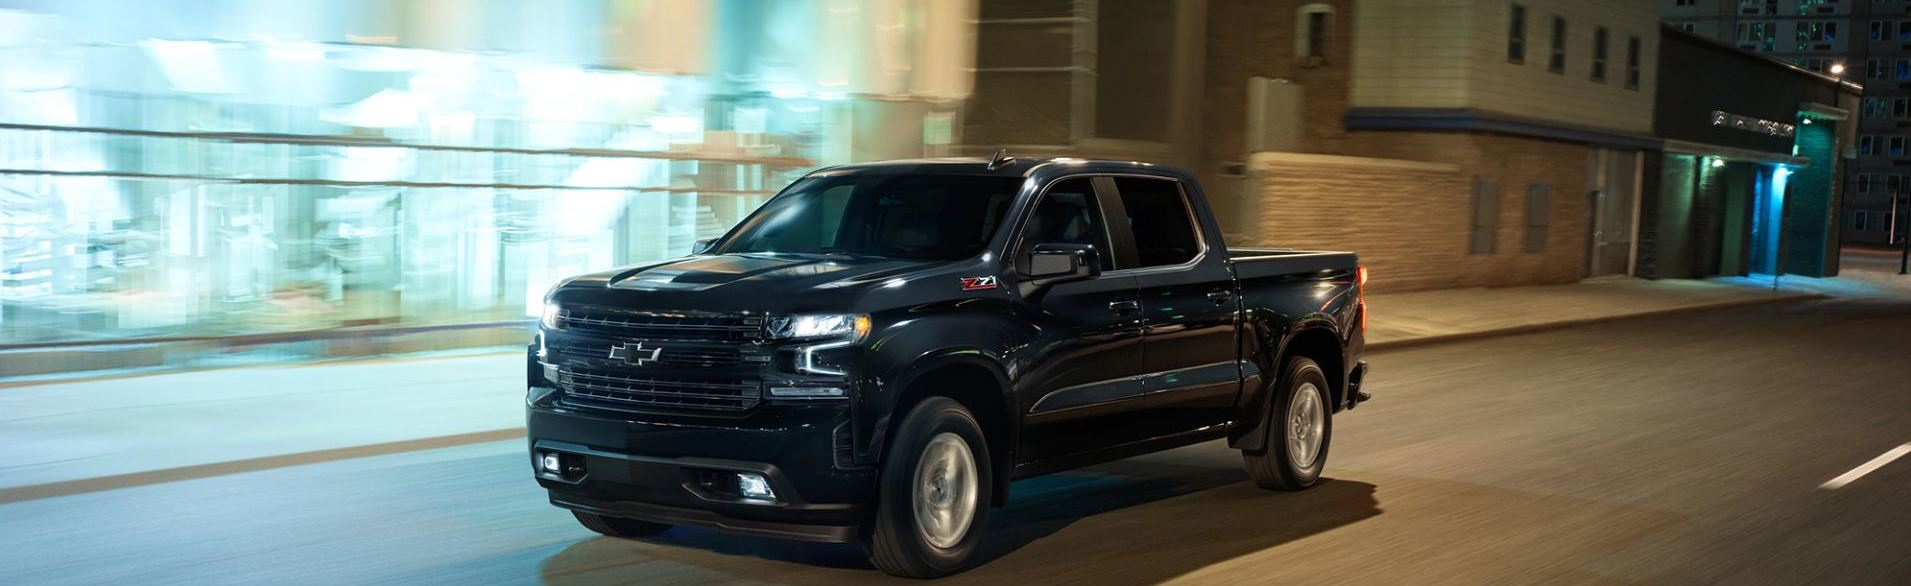 2020 Chevrolet Silverado 1500 for Sale near Naperville, IL